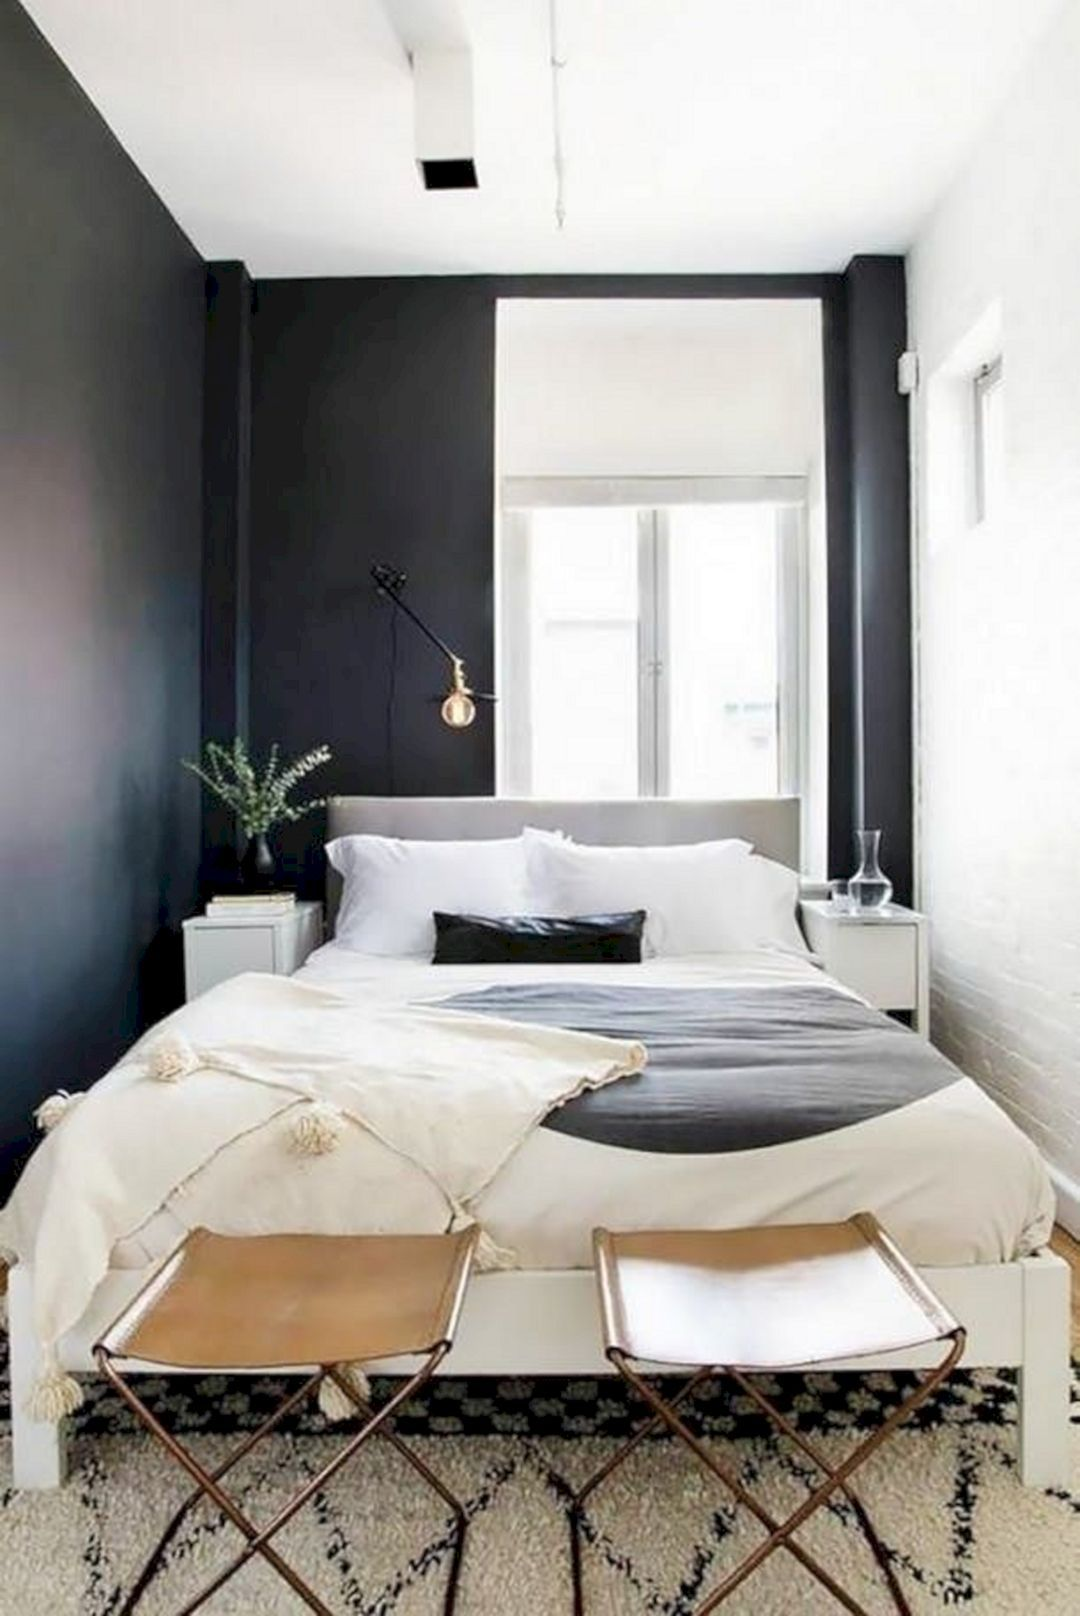 25 Incredible Bedroom Design Ideas With Workplace Freshouz Com Small Apartment Bedrooms Tiny Bedroom Design Small Master Bedroom